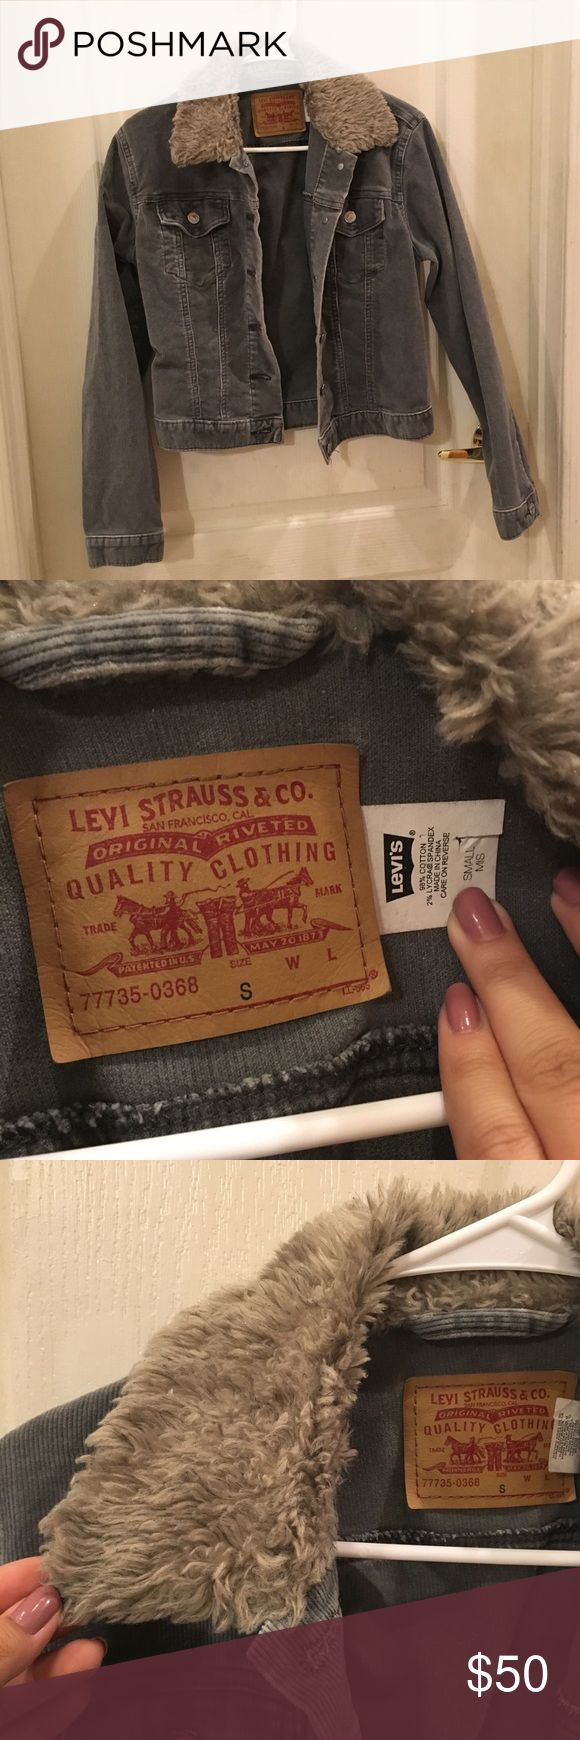 Levi Corduroy Jacket with faux fur Cropped jacket in gray Corduroy and super cute for the cold weather! In great used condition!! Ask questions below!! Levi's Jackets & Coats